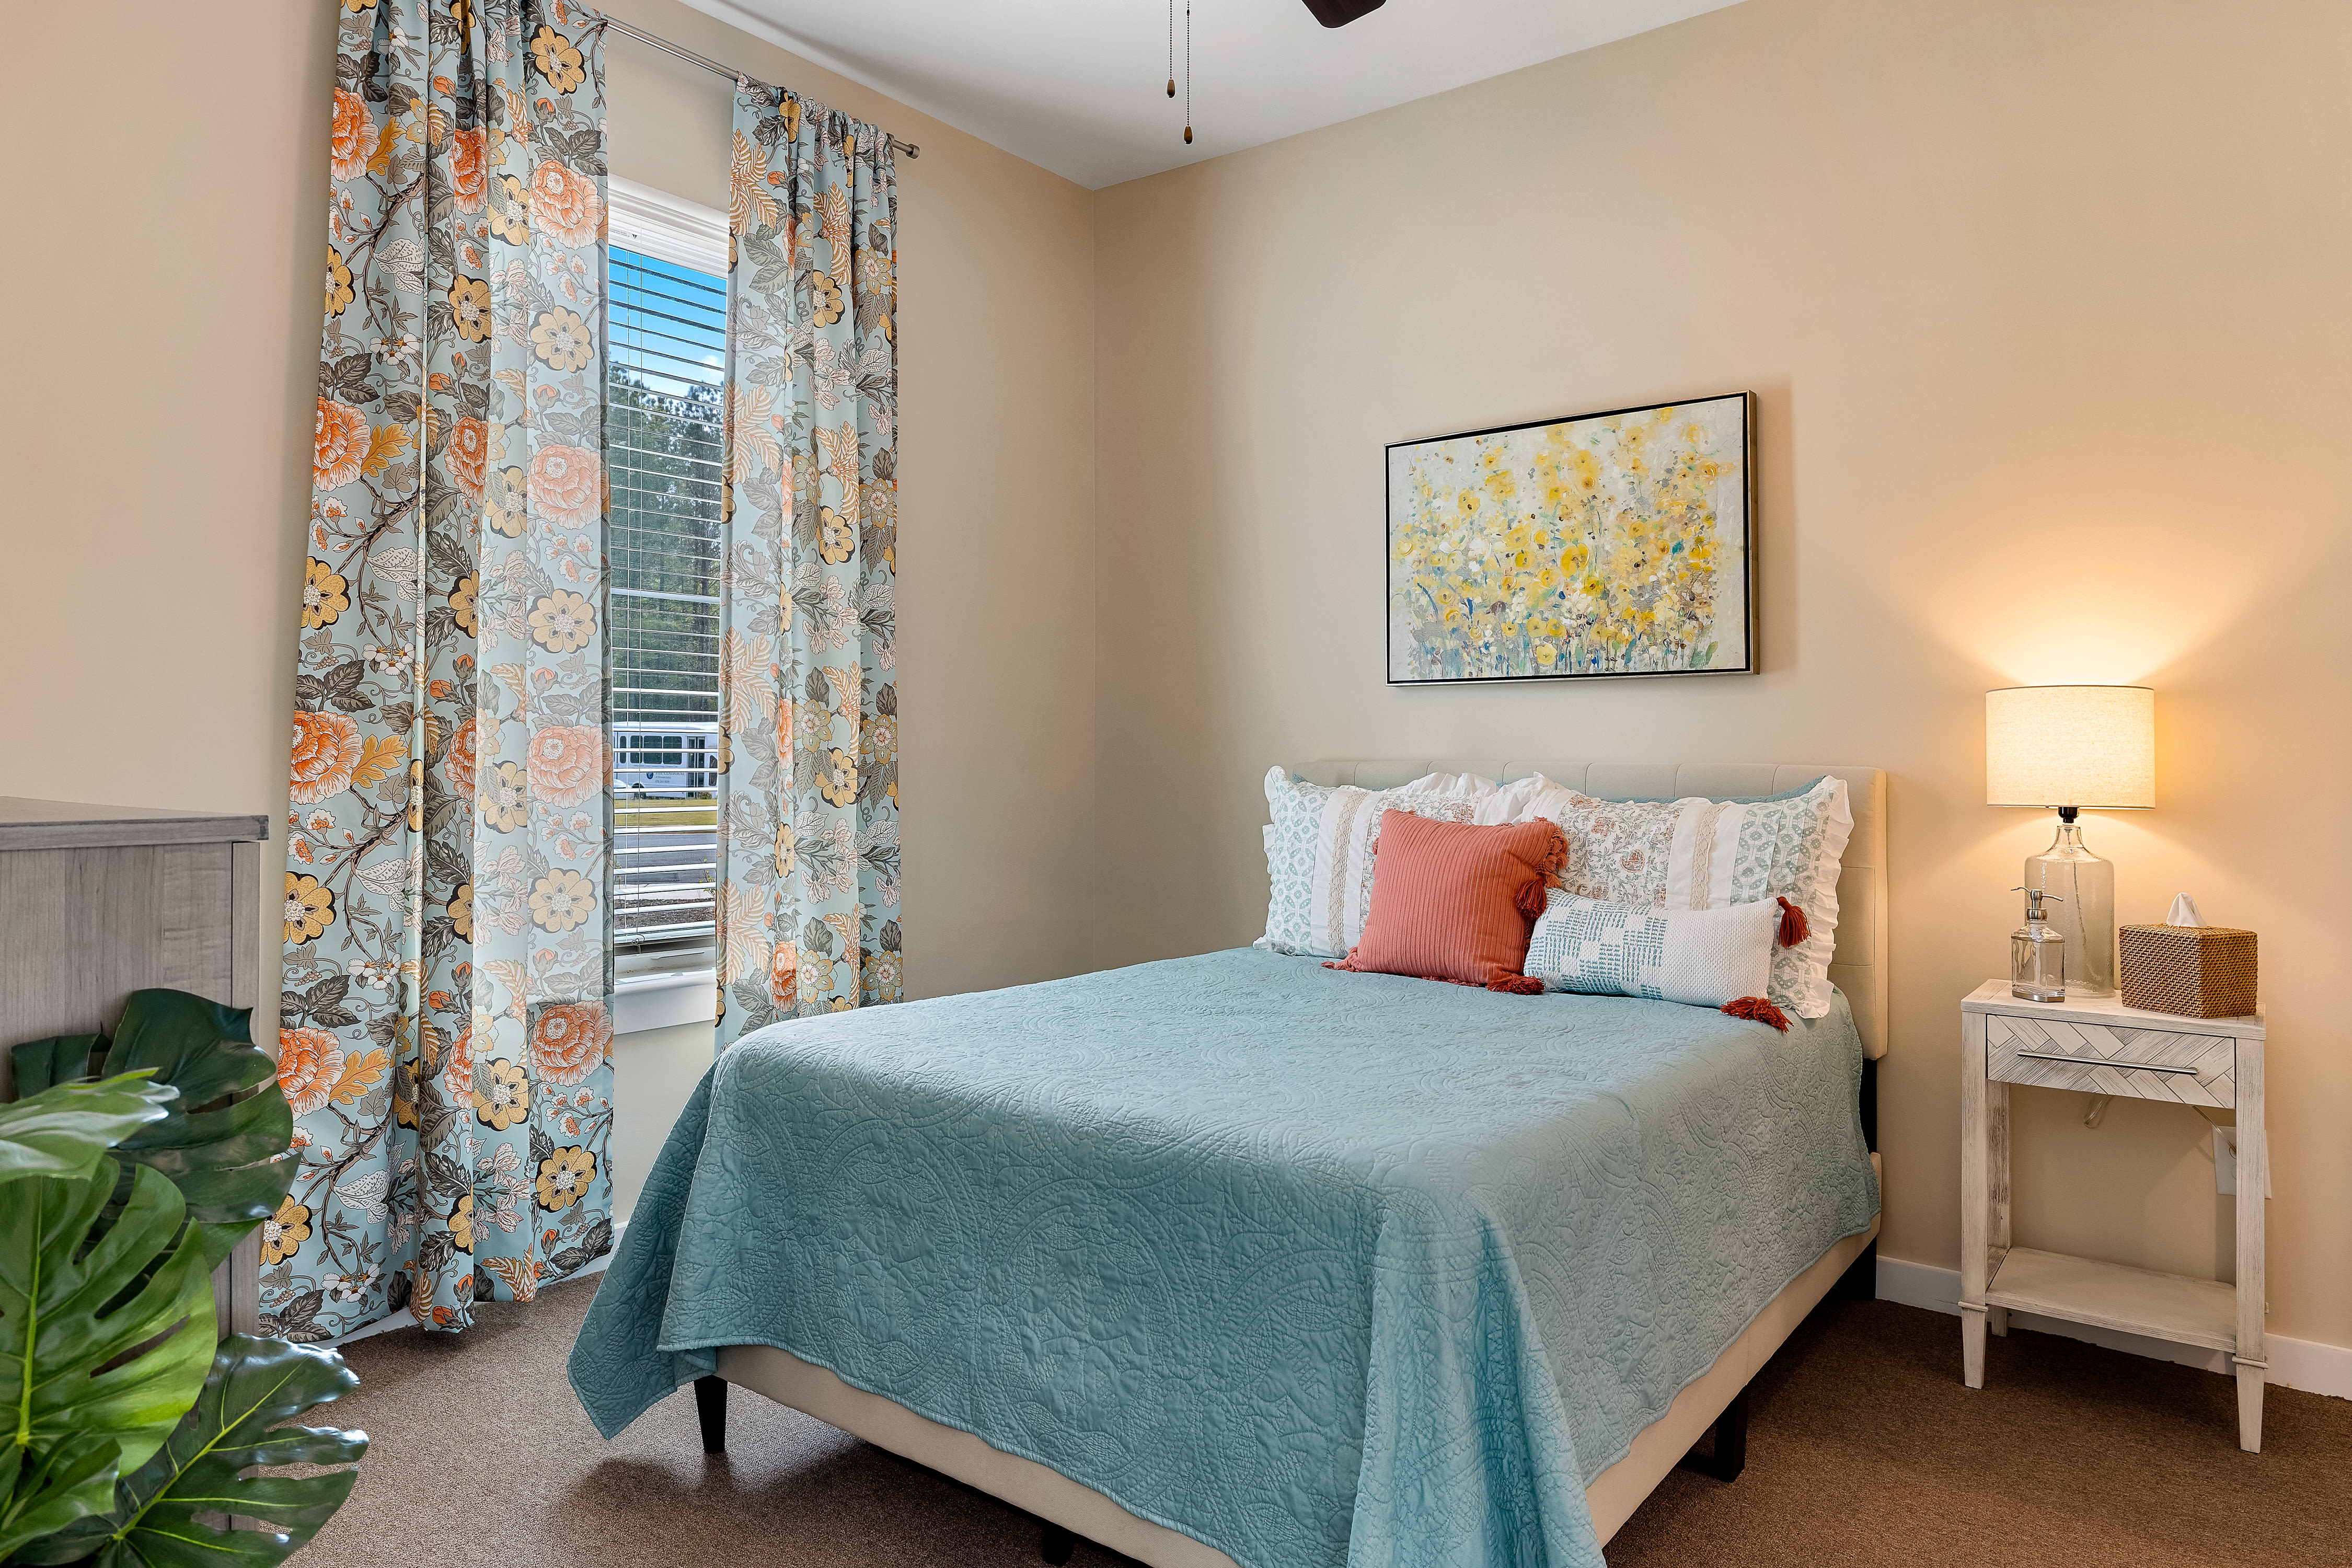 Well furnished bedroom at The Claiborne at Newnan Lakes in Newnan, GA